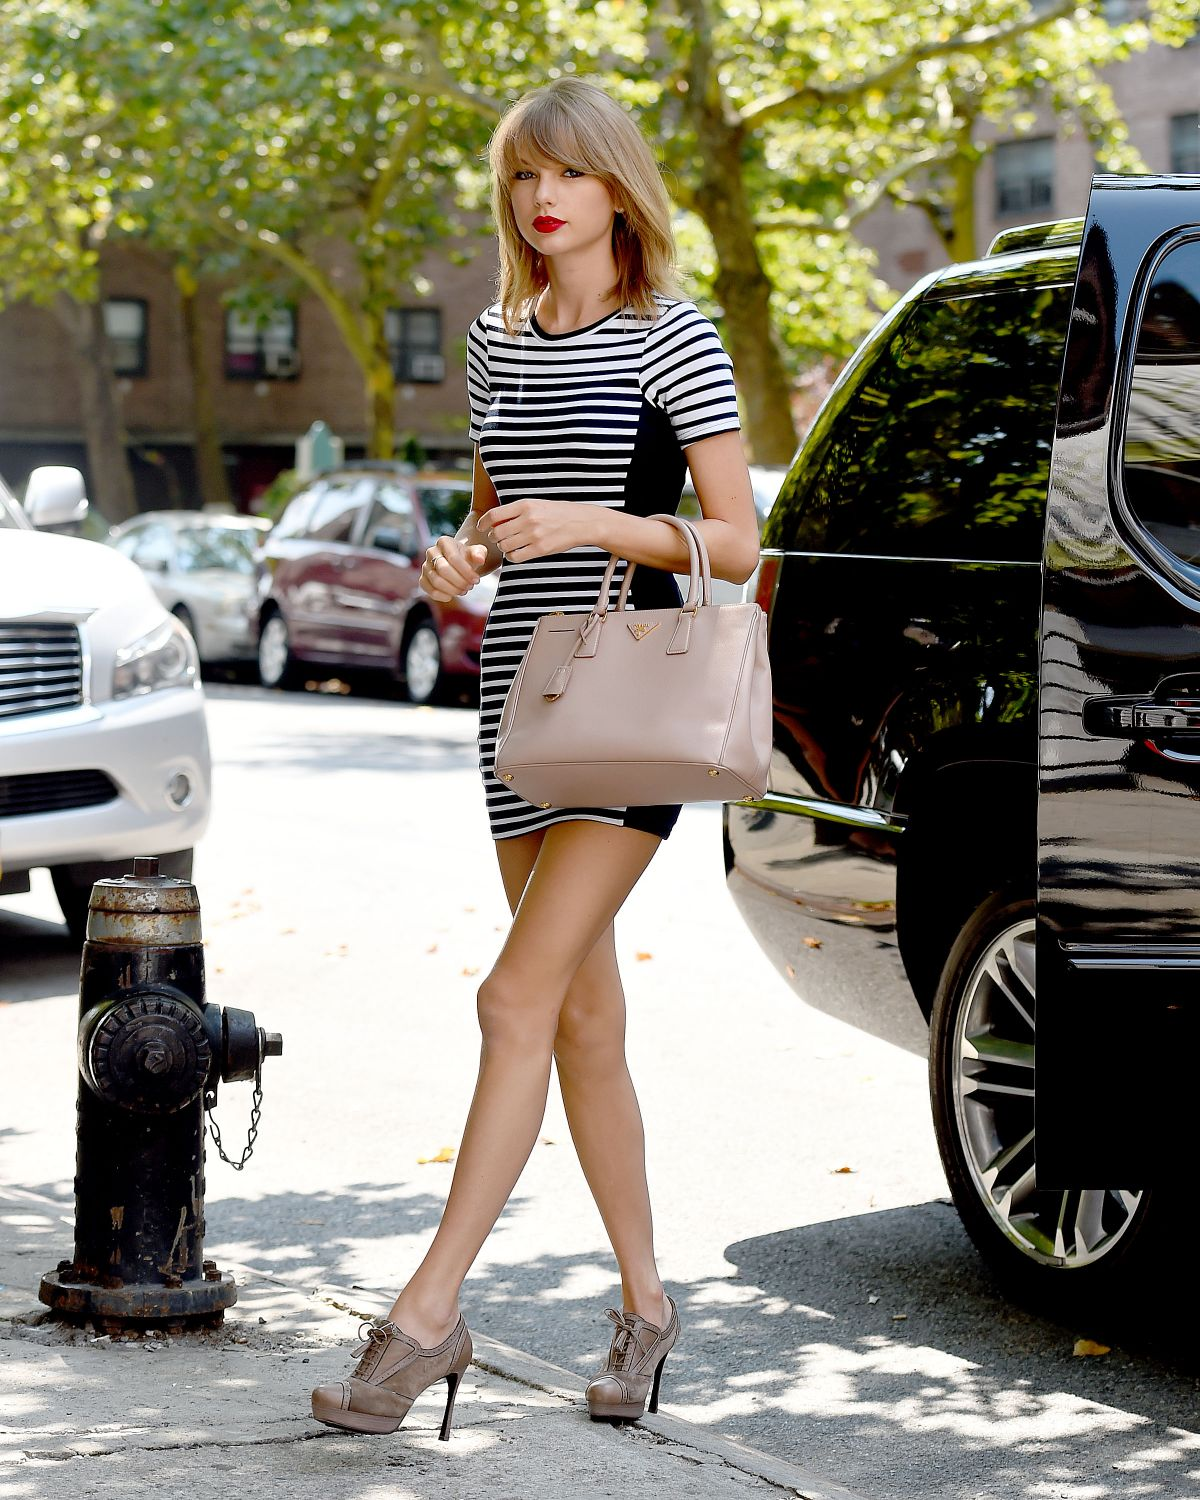 TAYLOR SWIFT In Tight Dress Out In New York HawtCelebs